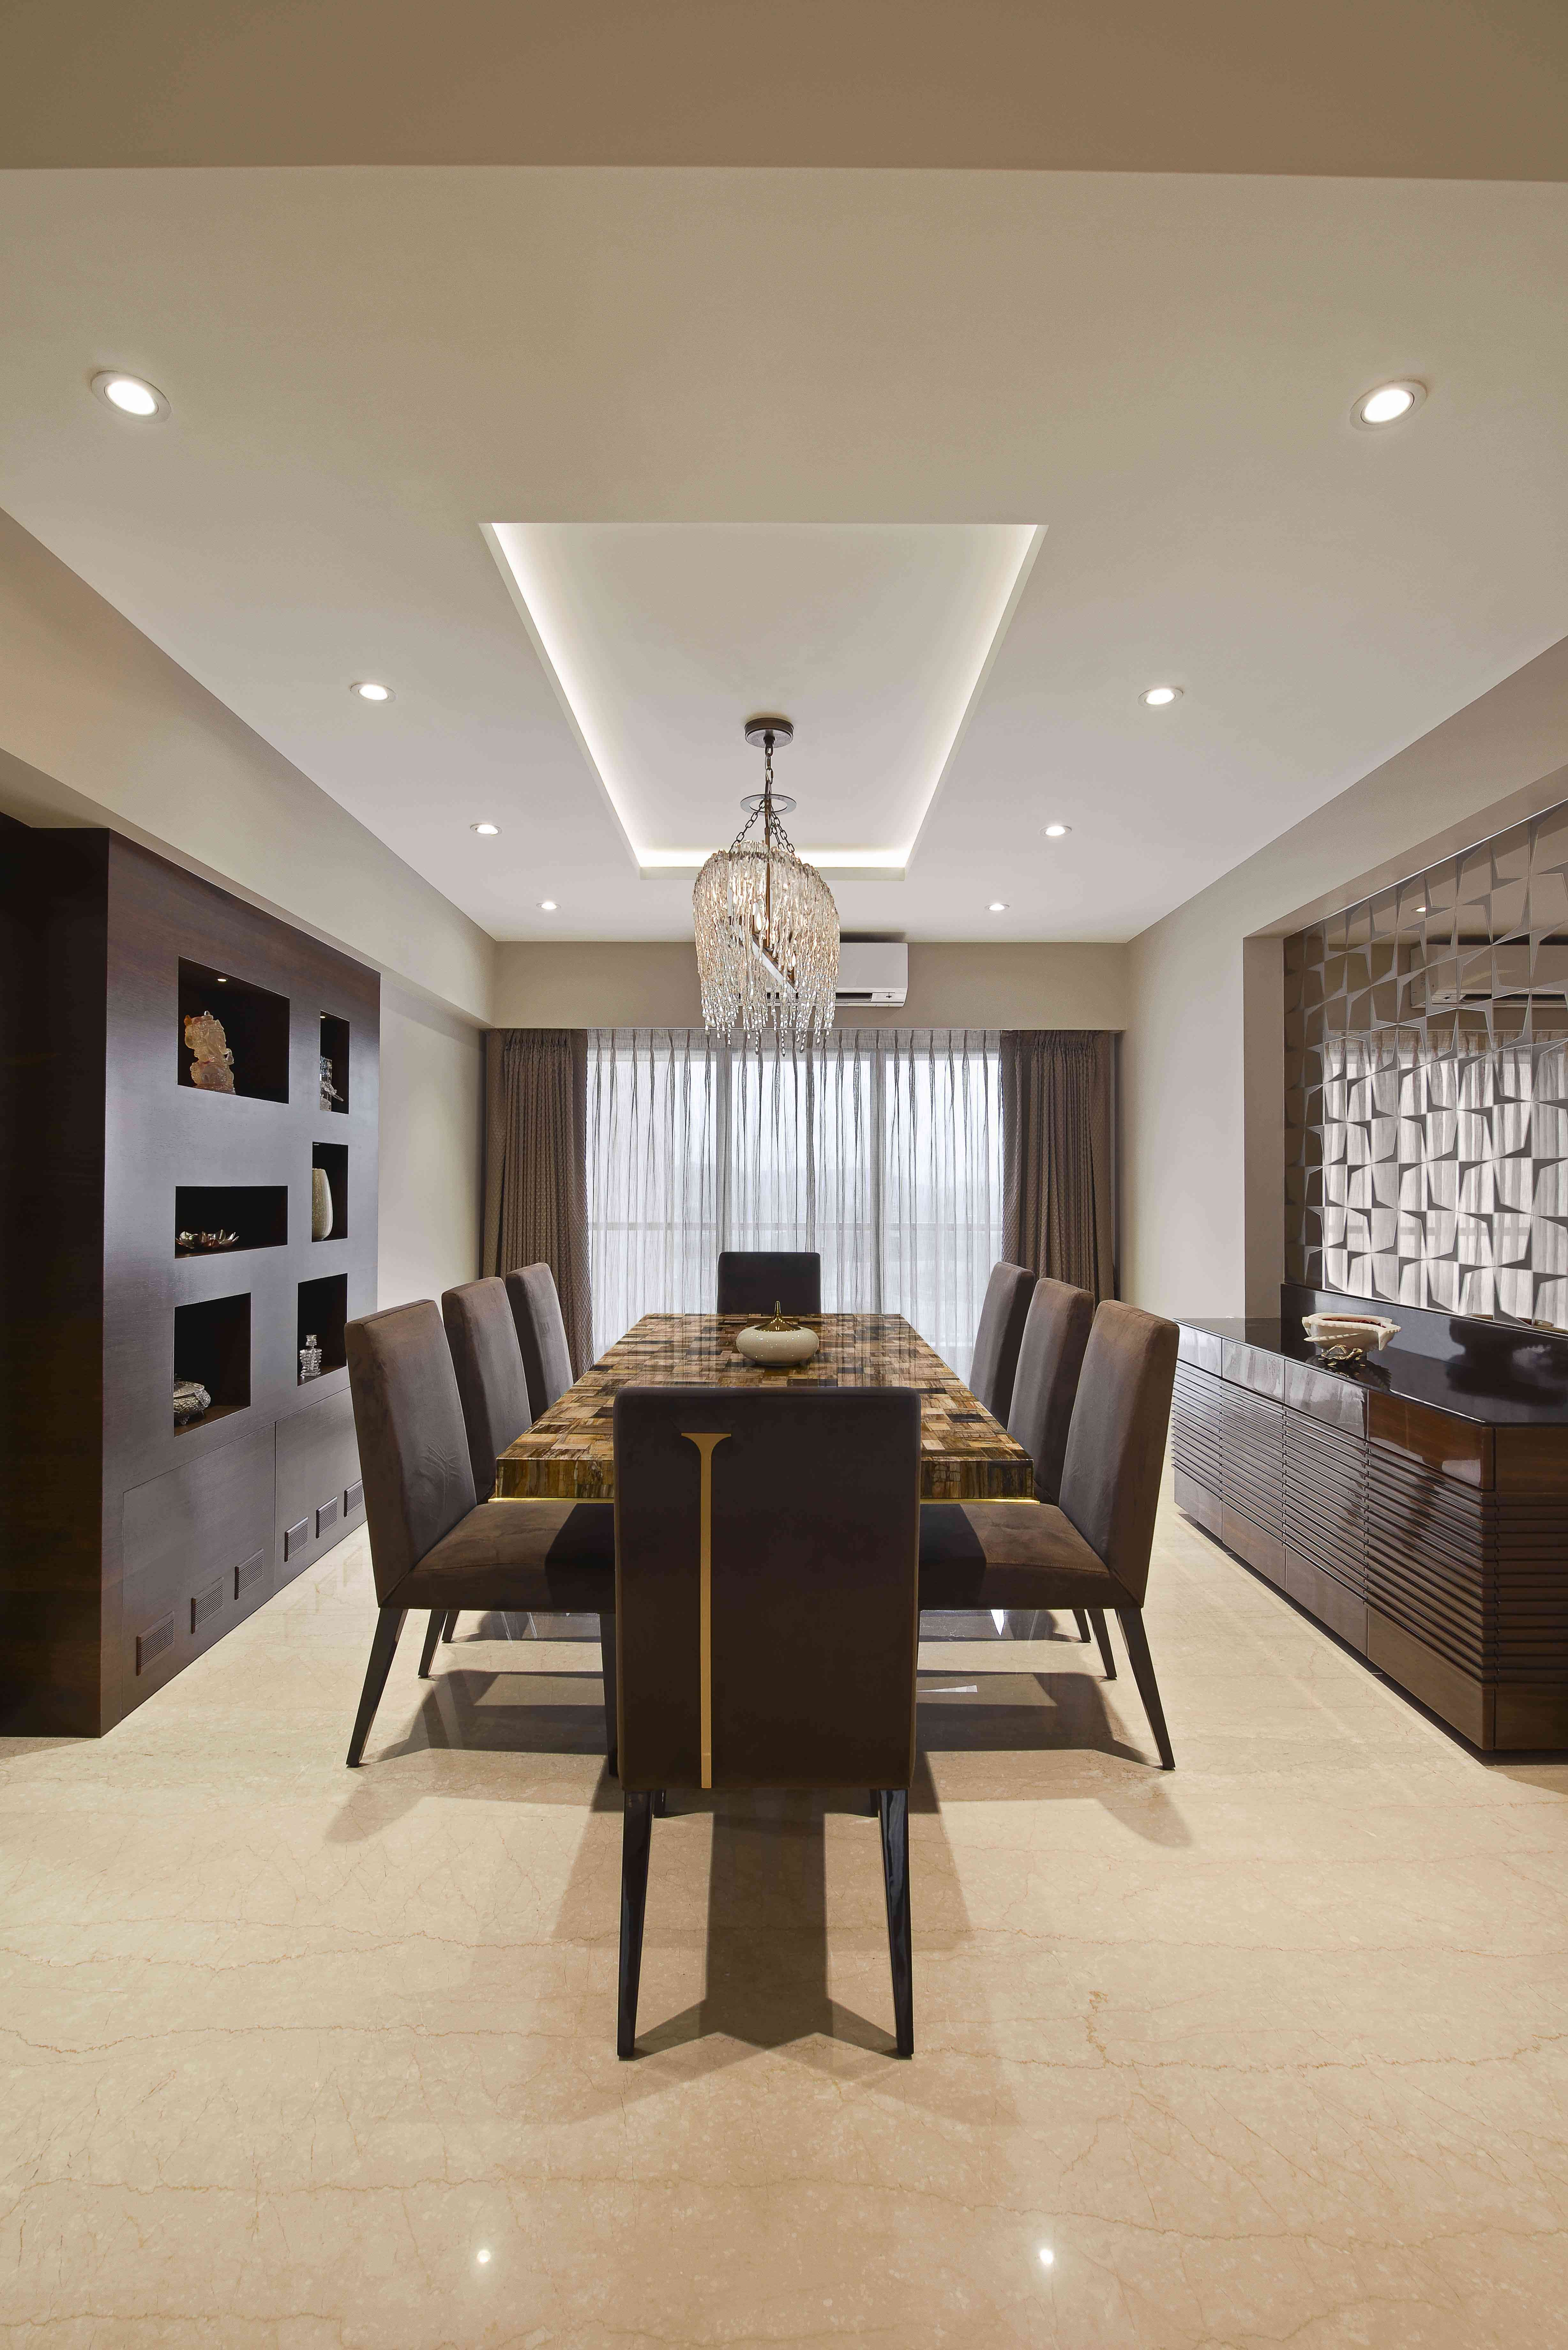 Dining room design - Milind Pai in 2019 | Living room ... on Dining Table Ceiling Design  id=52987